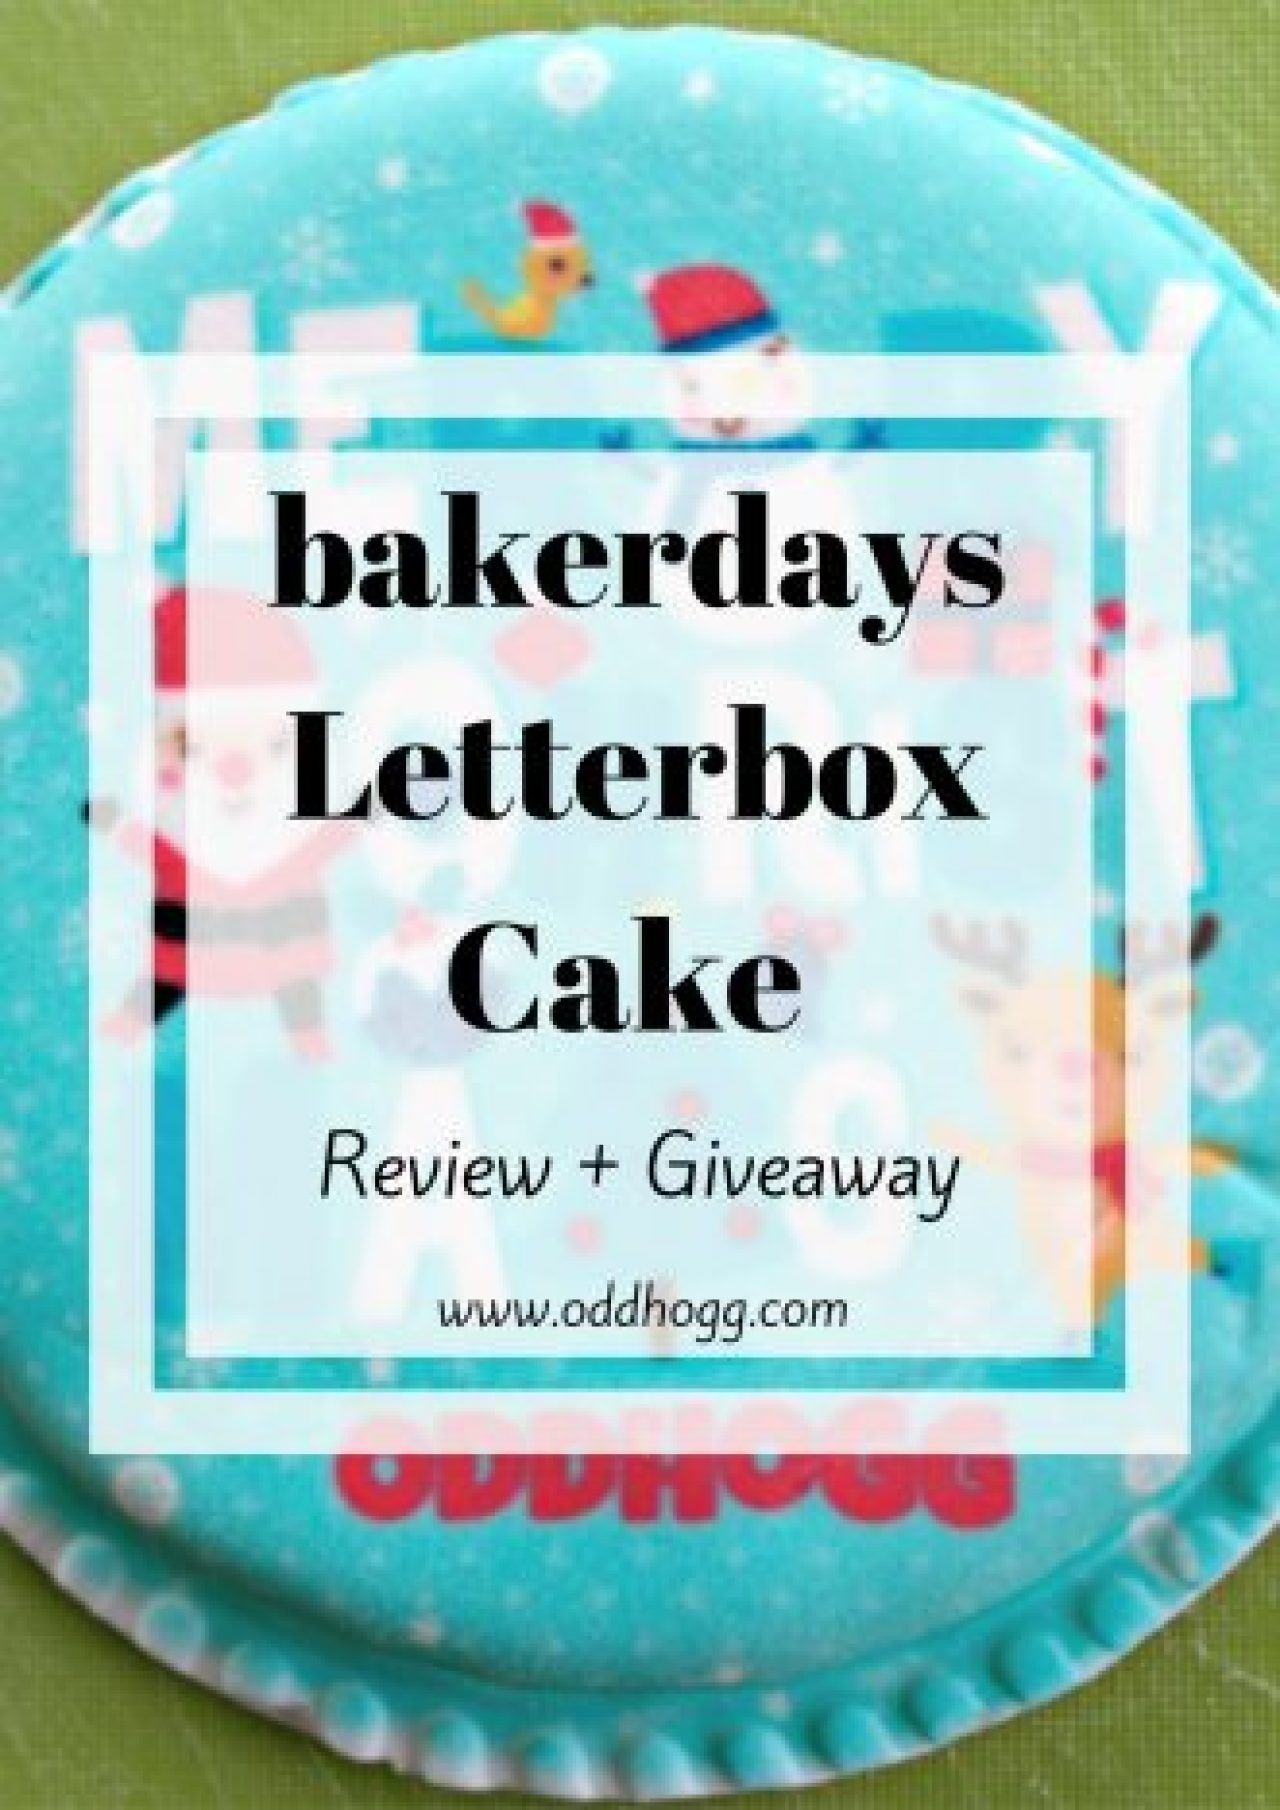 bakerdays Letterbox Cake Review + Giveaway   What more could you want than a cake that arrives through the letter box? Perfect for a birthday or celebration - but what is it really like? Click on the post to find out! http://oddhogg.com